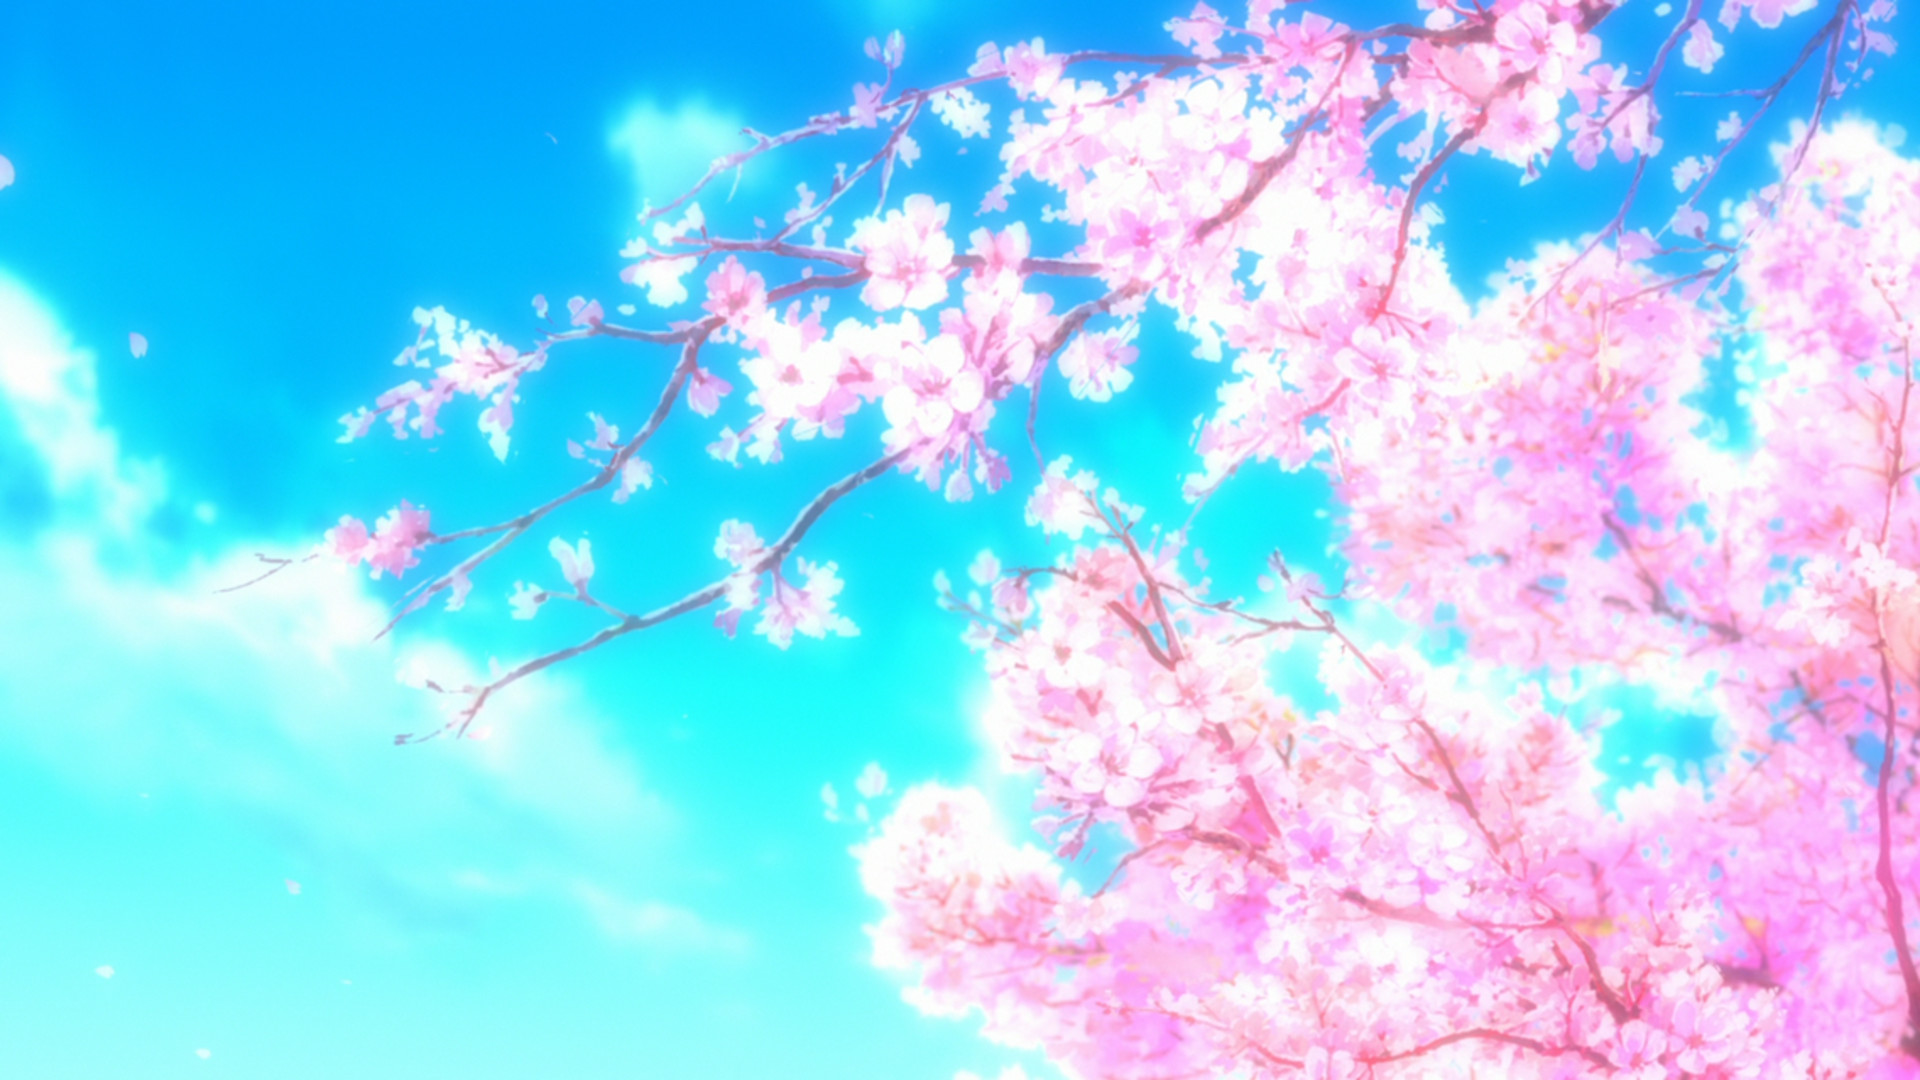 Free Cherry Blossom Flowers Photography Wallpapers Hd